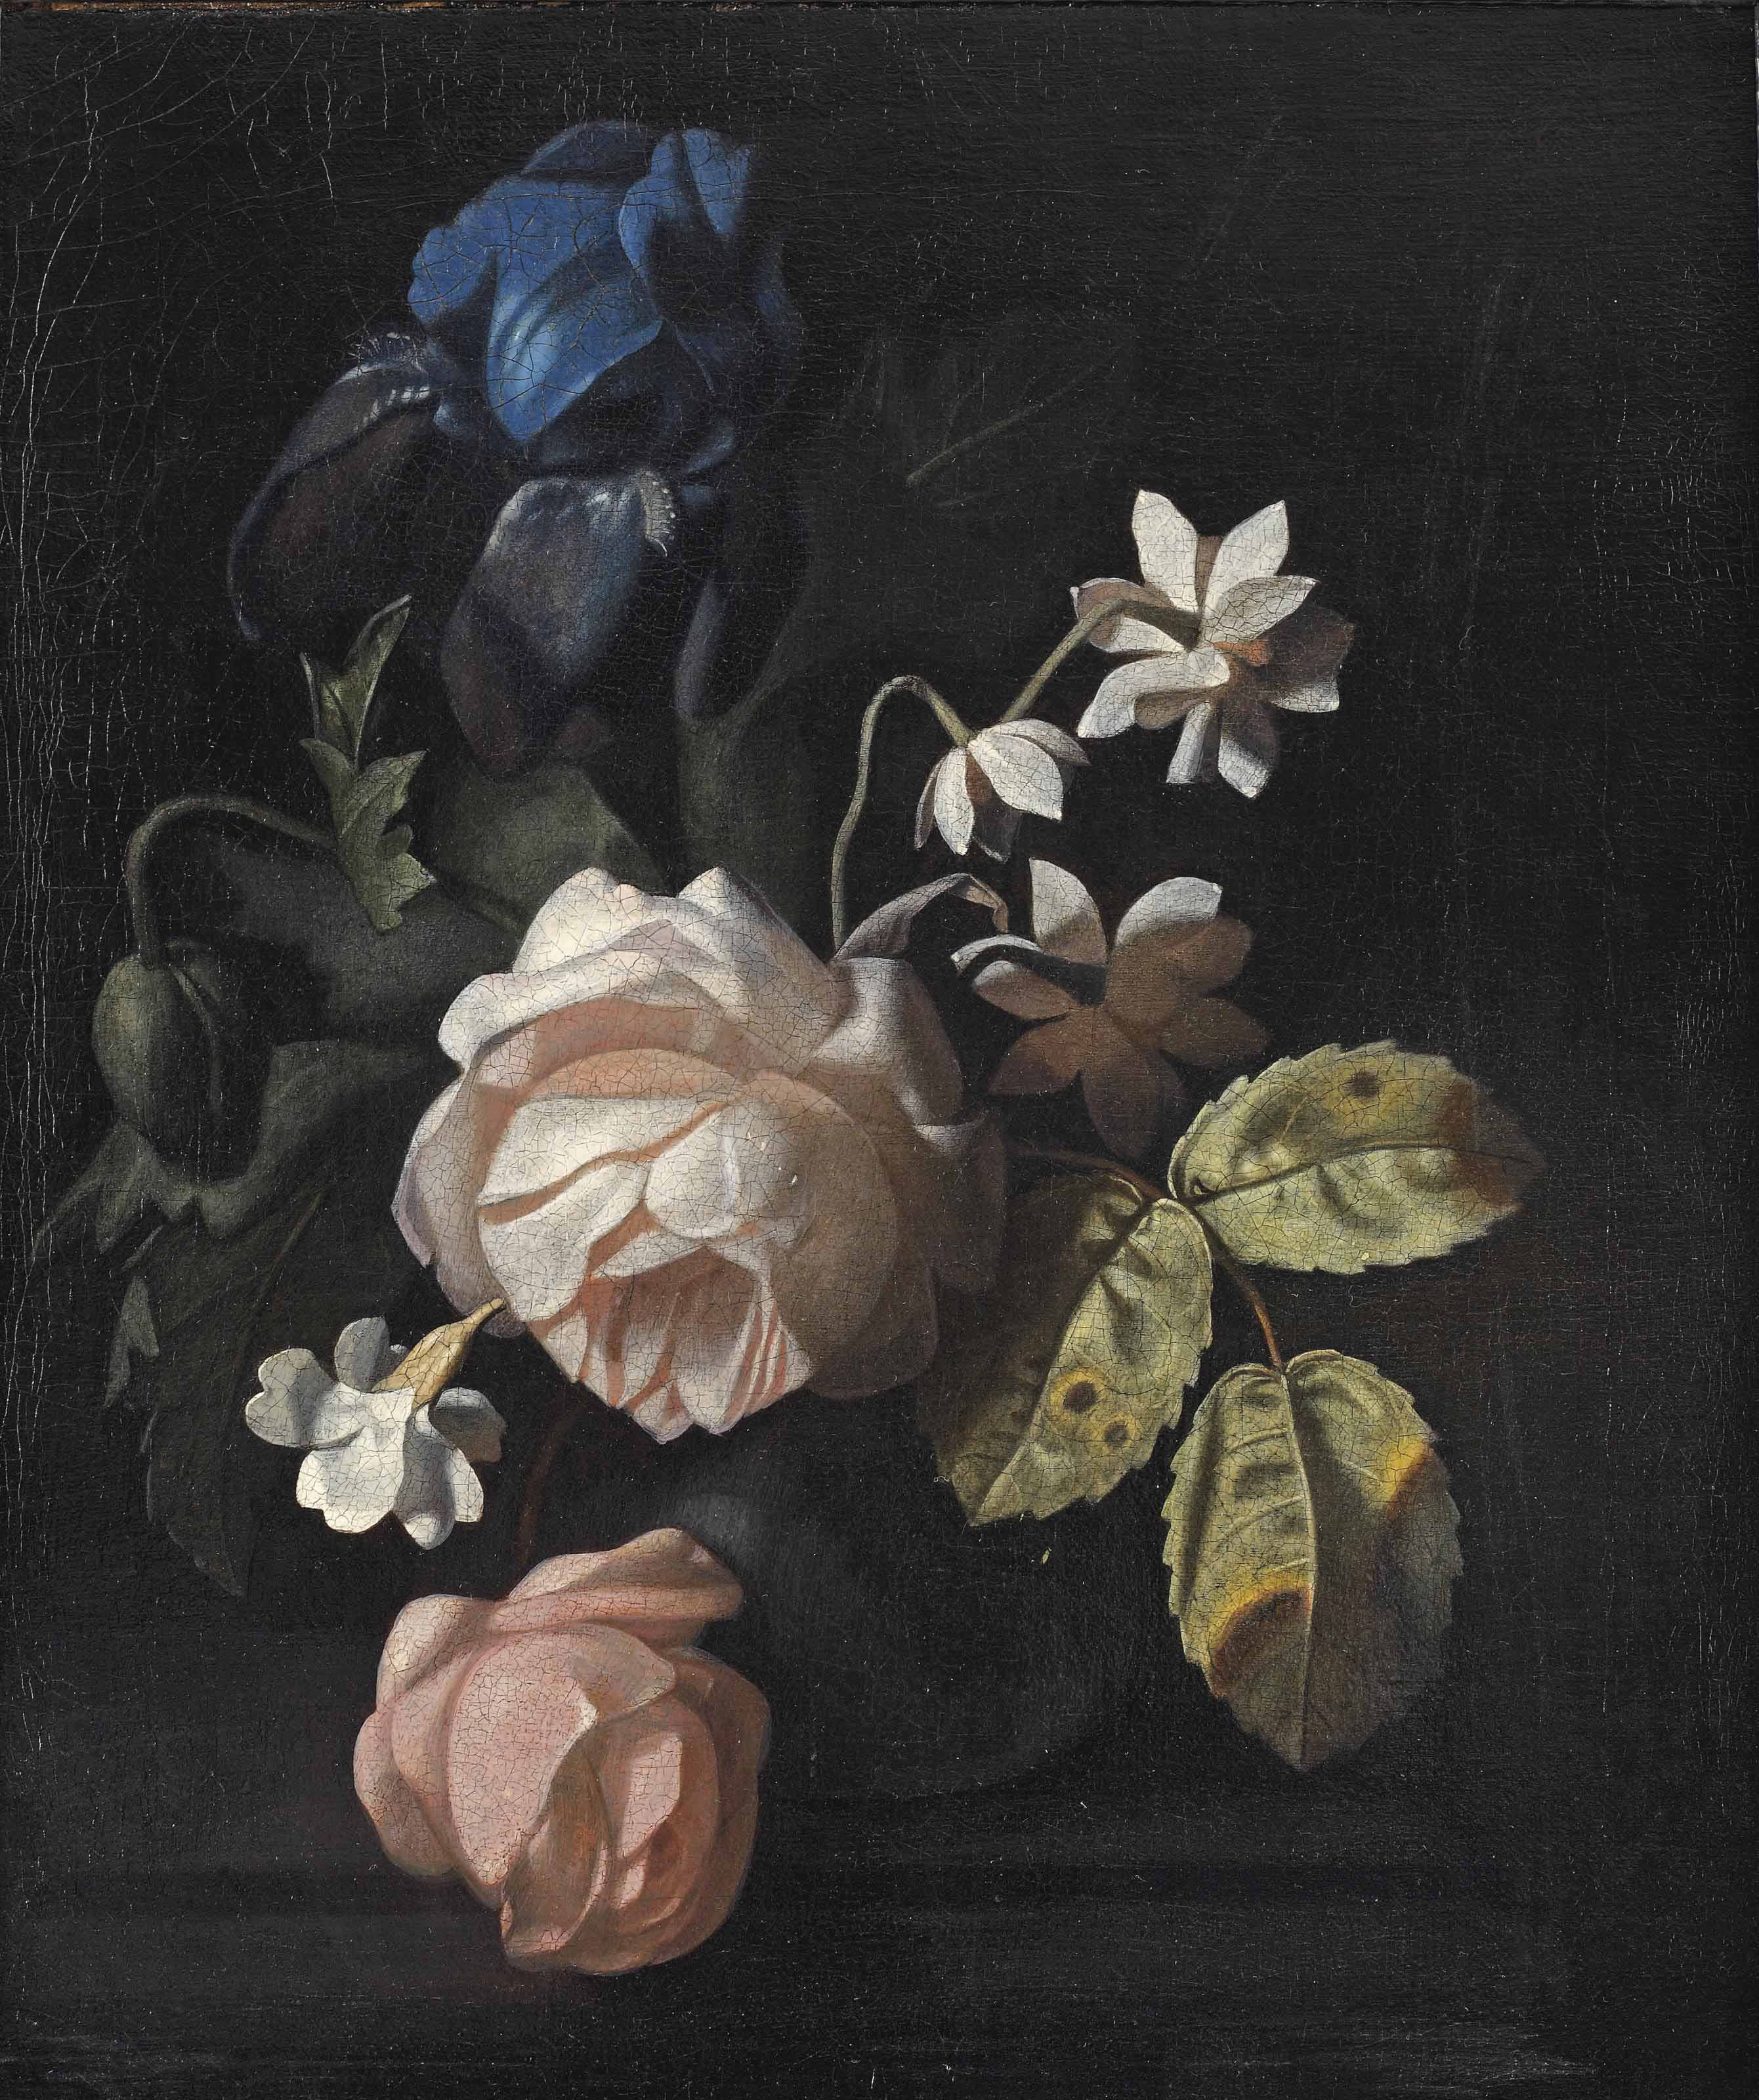 Roses, an iris and other flowers in a vase on a ledge